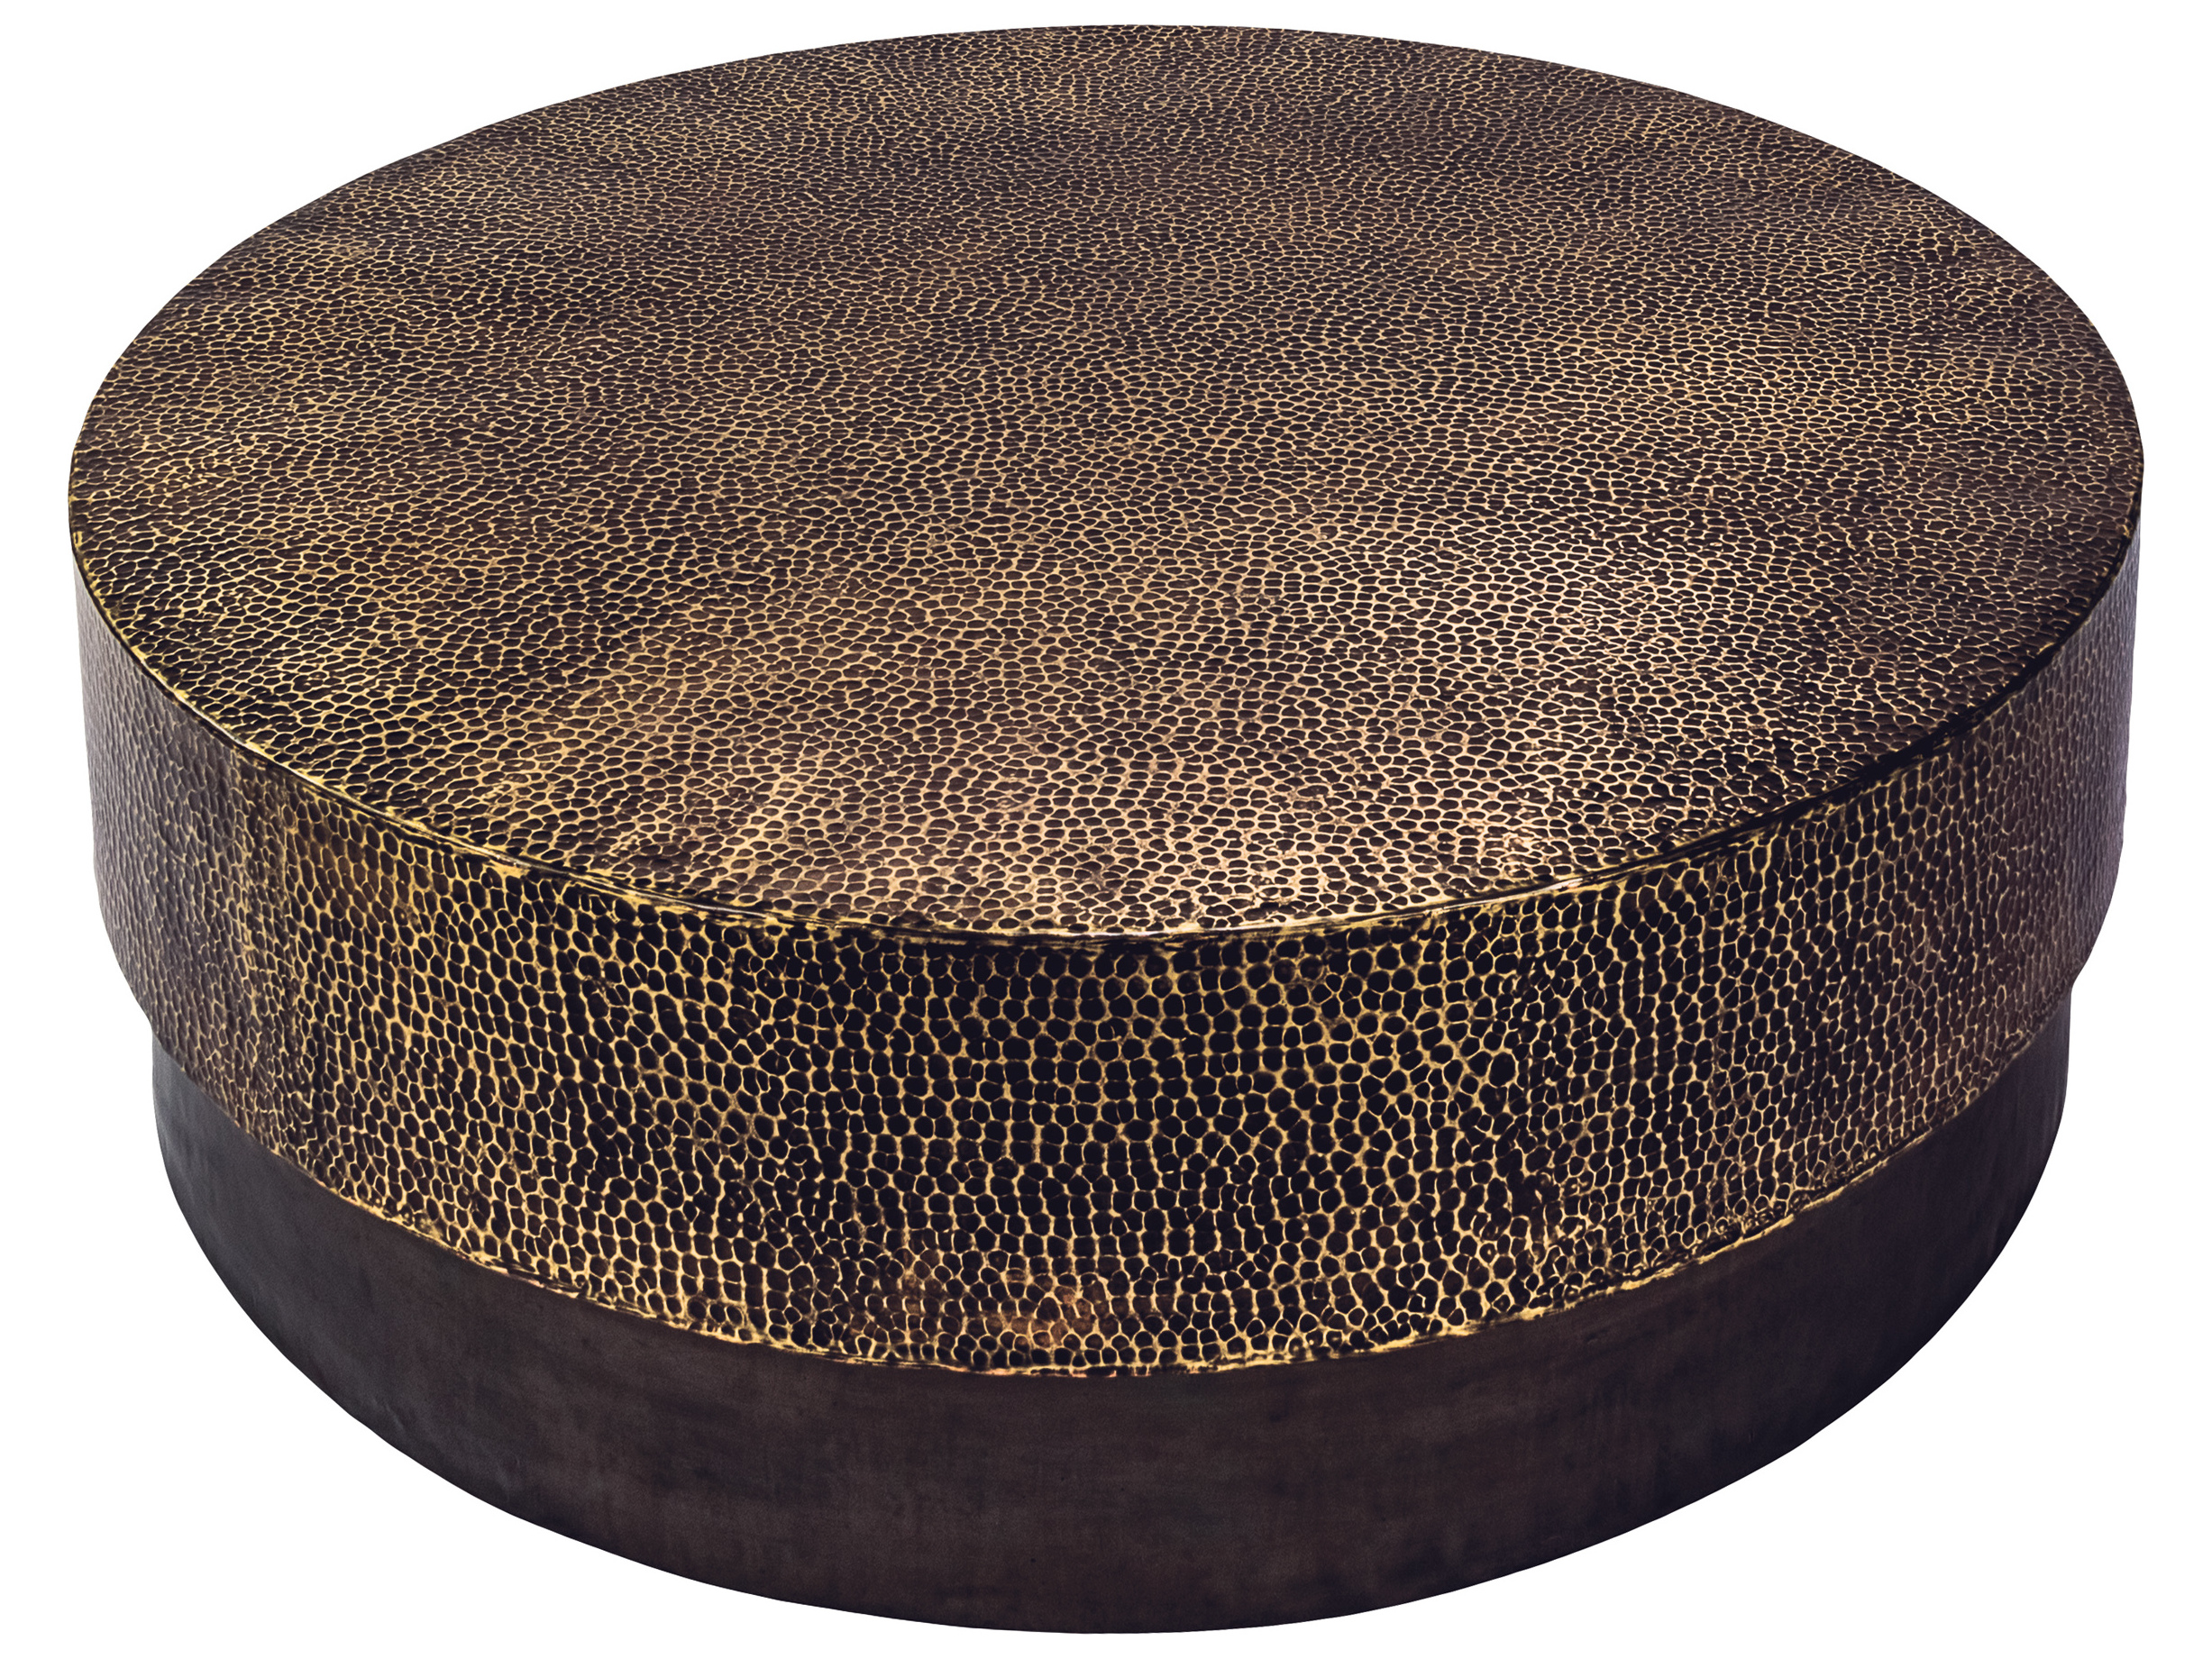 Phenomenal Seasonal Living Ingot Aged Bullion Hand Hammered Copper Hantaro 44 Wide Round Coffee Table Gamerscity Chair Design For Home Gamerscityorg